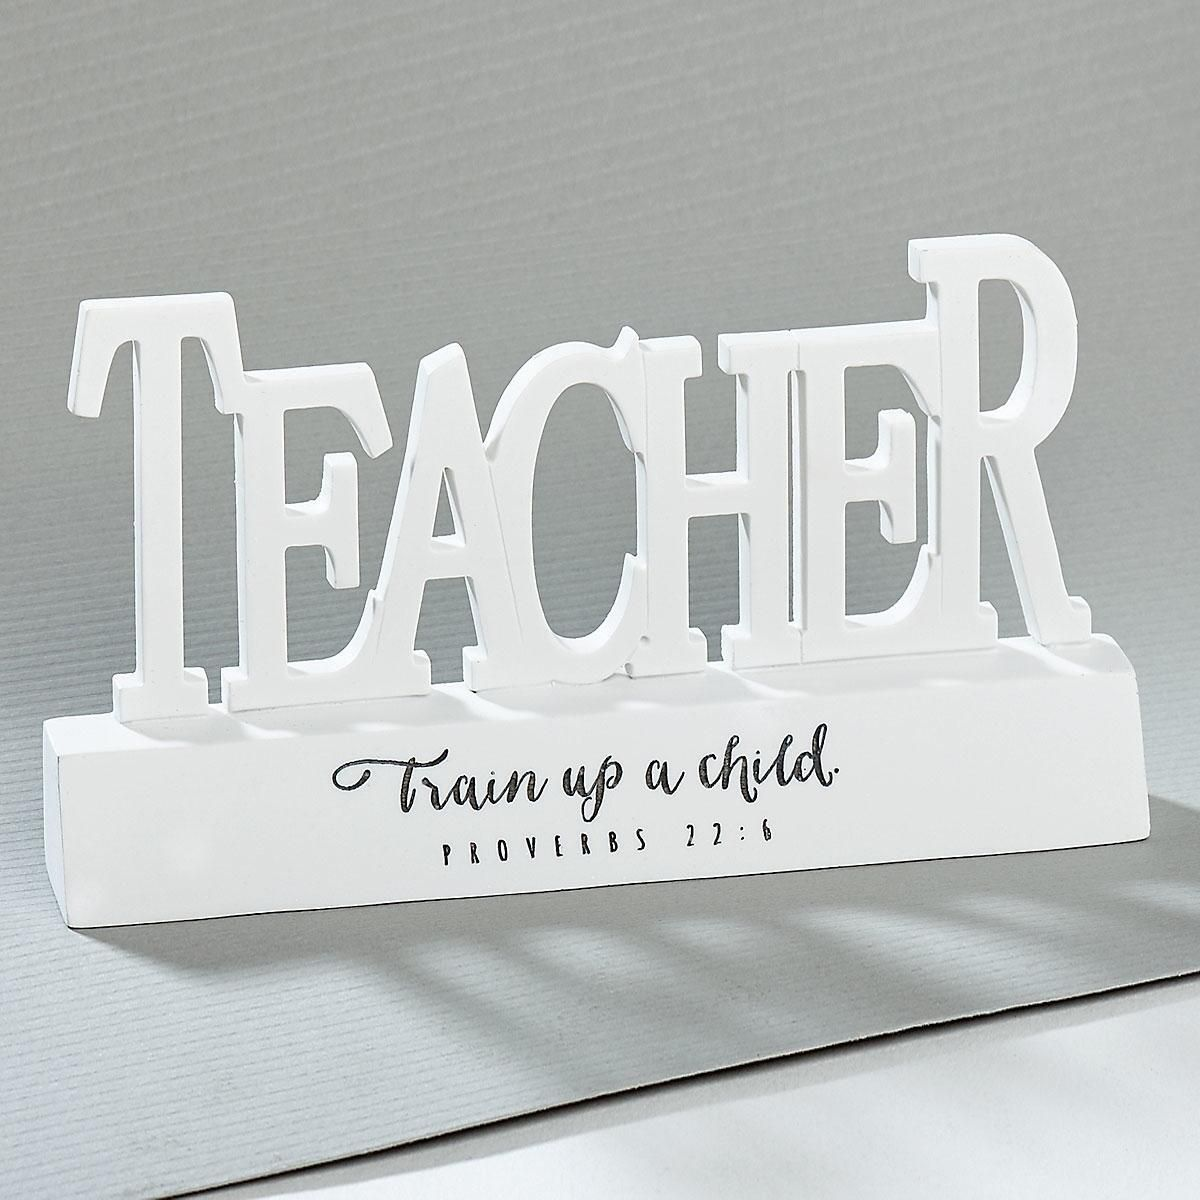 Teacher Train Up A Child Desktop Sign